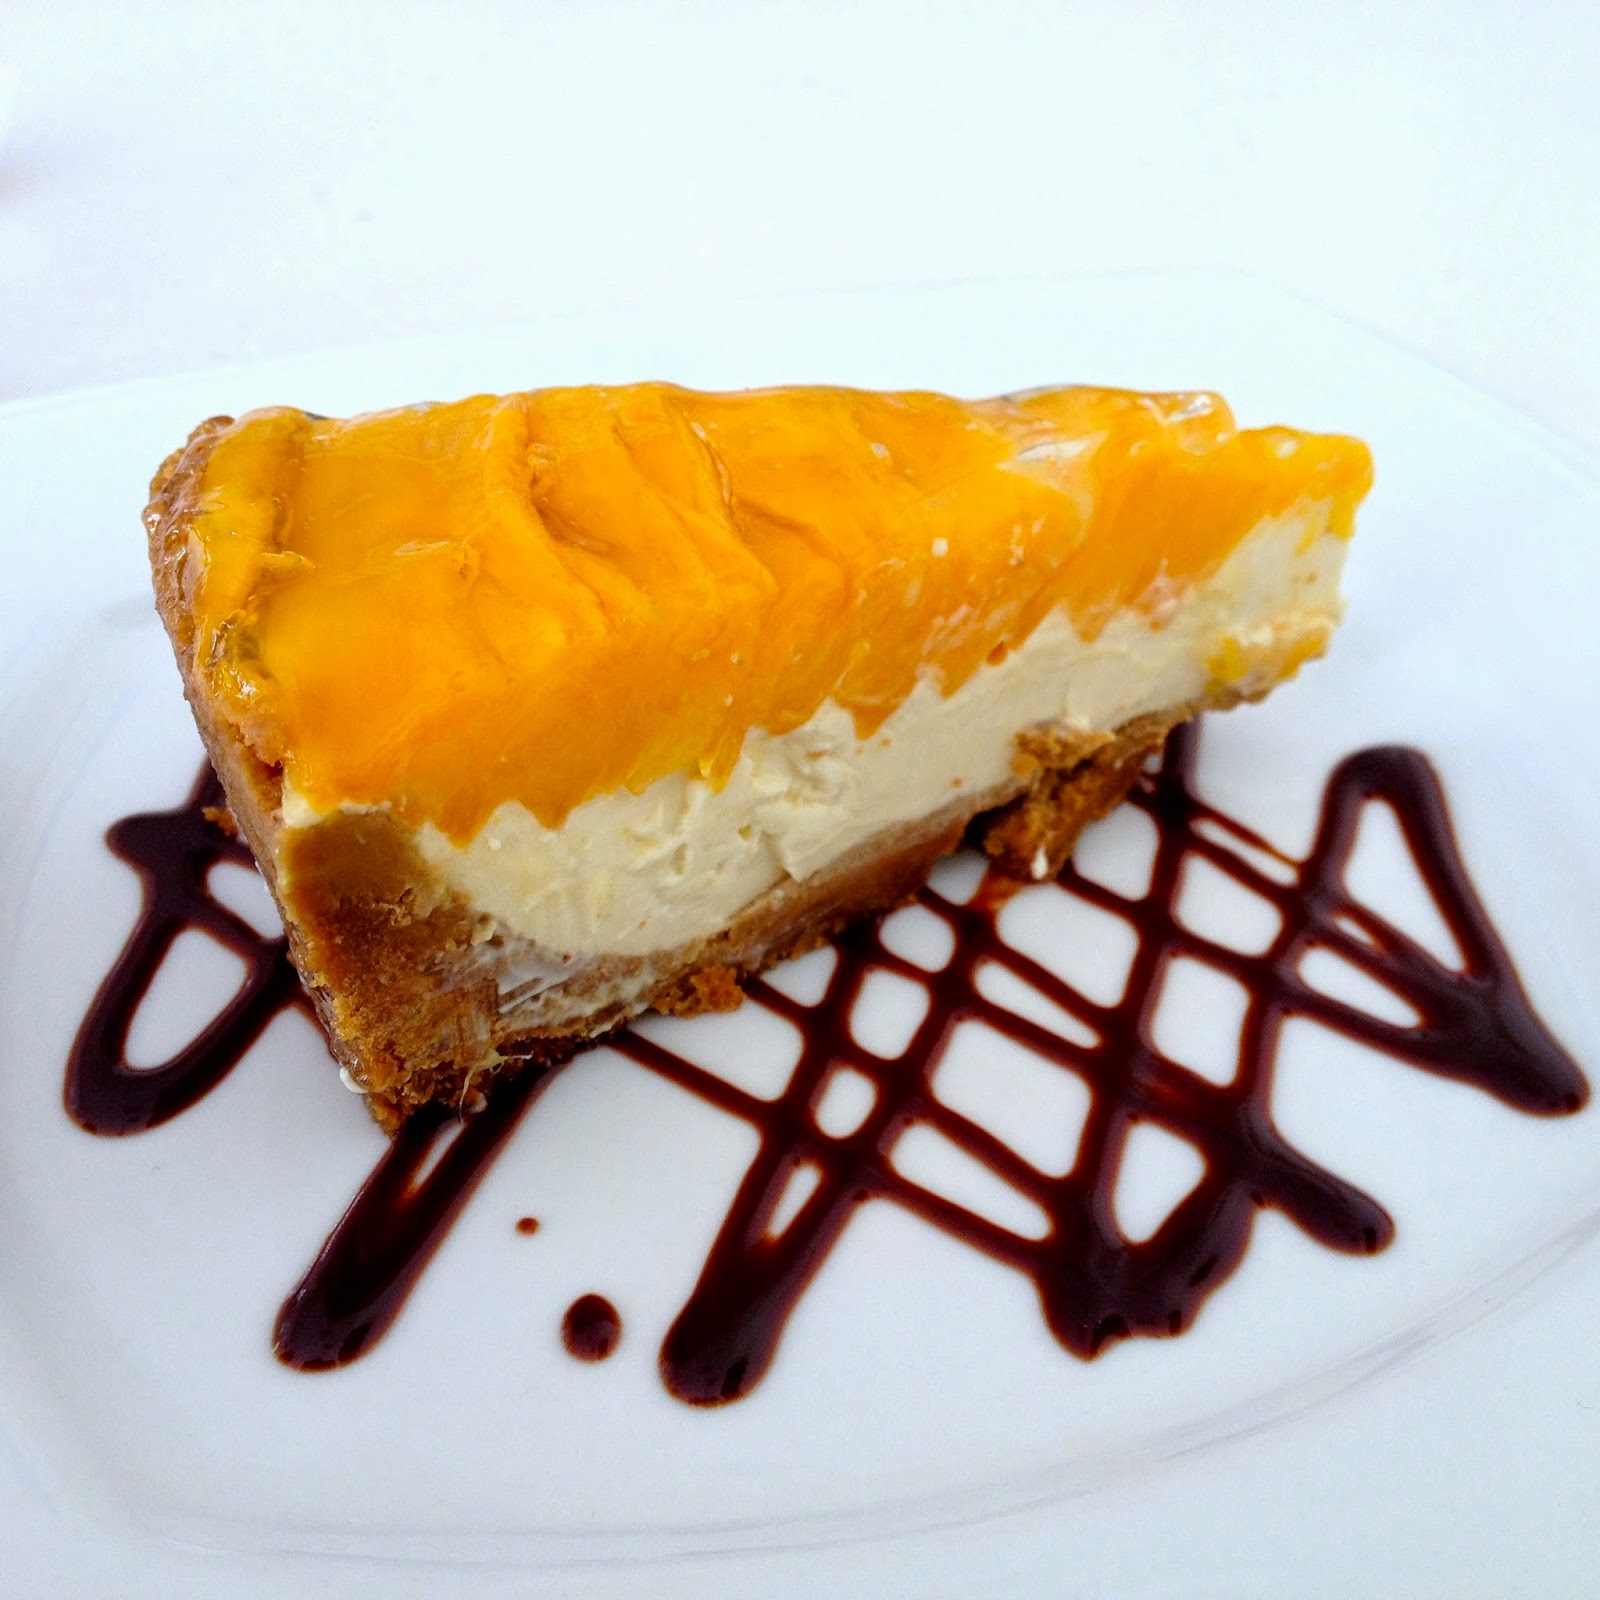 Butterbean Desserts and Cafe 's Mango Cream Pie